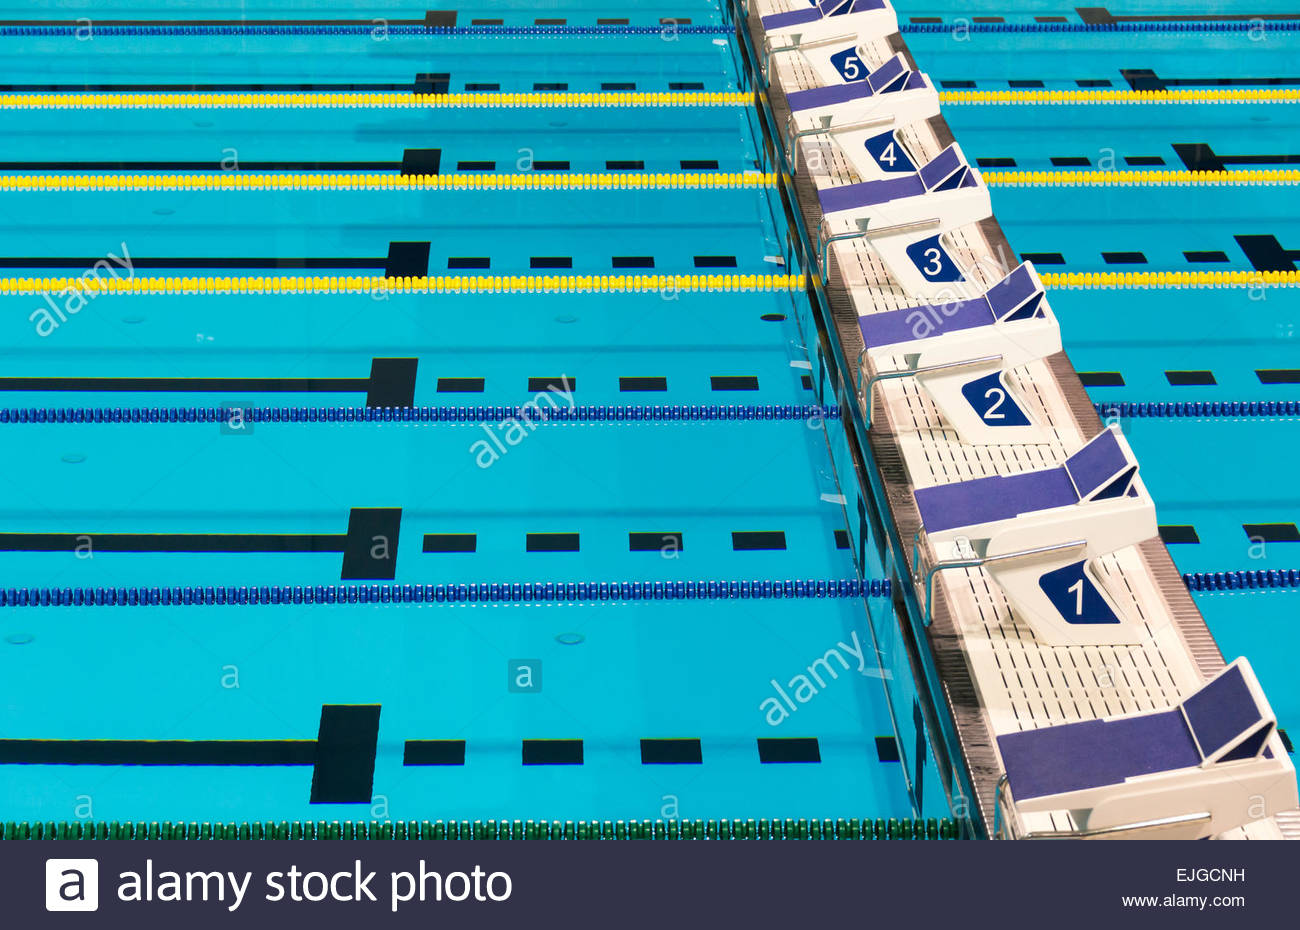 beautiful olympic sport competition swimming pool lanes in a clear transparent blue water facility